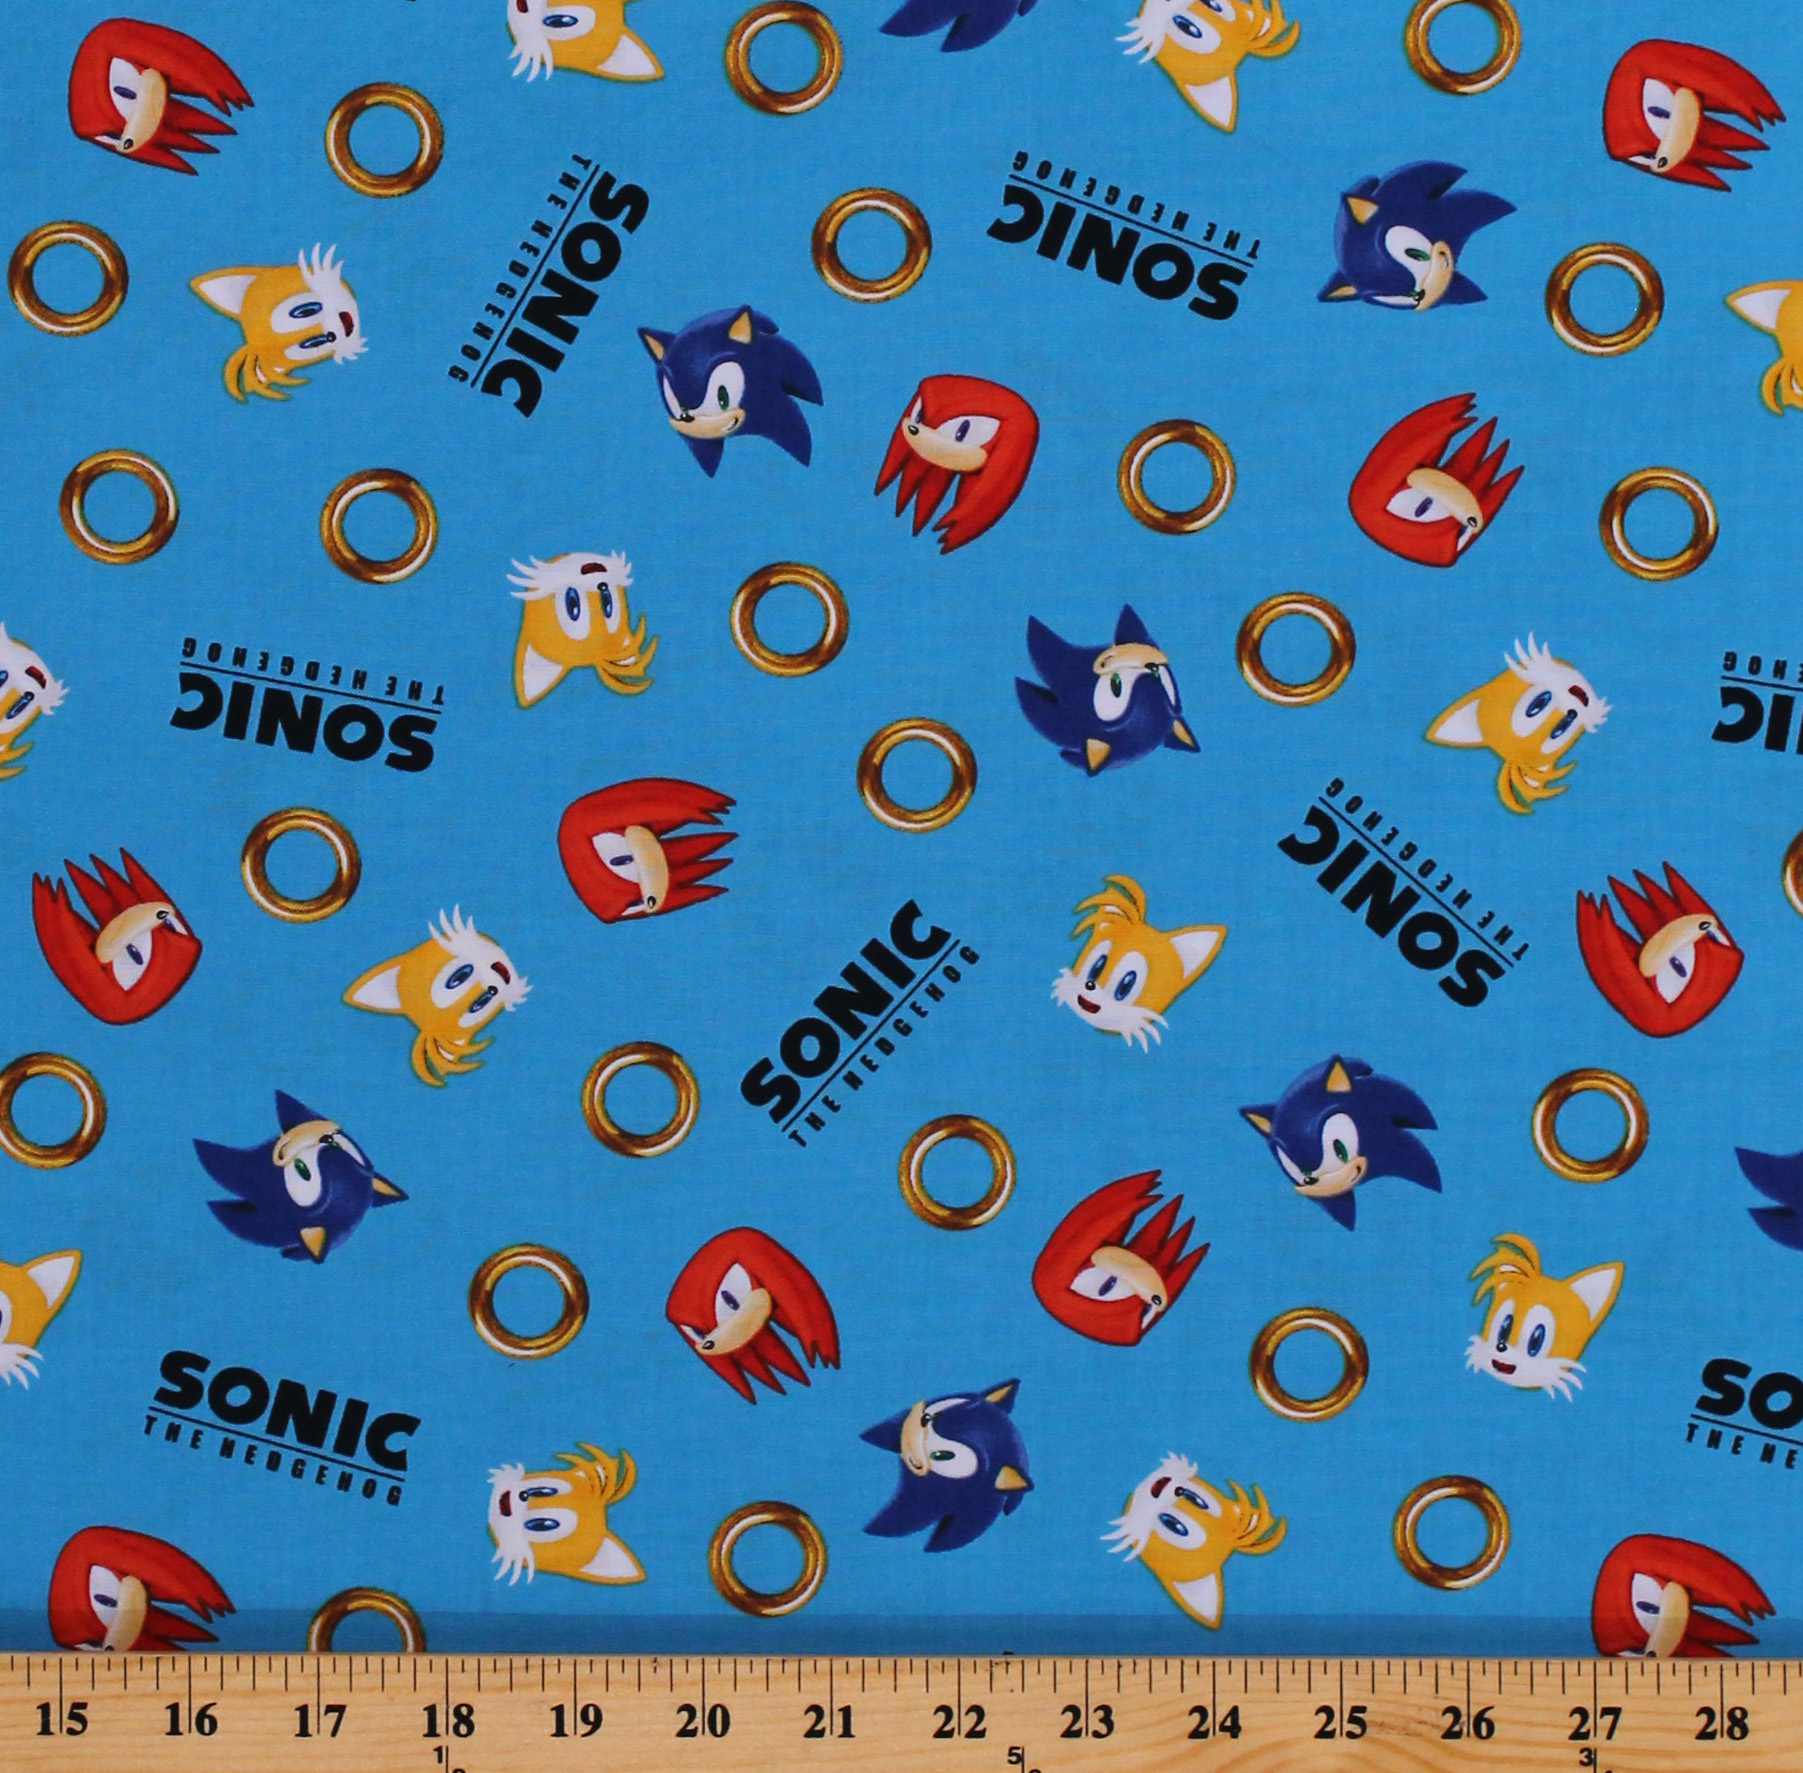 Cotton Sonic The Hedgehog And Friends Gotta Go Fast Kids Video Games Blue Cotton Fabric Print By The Yard Axx 73949 4 Blue